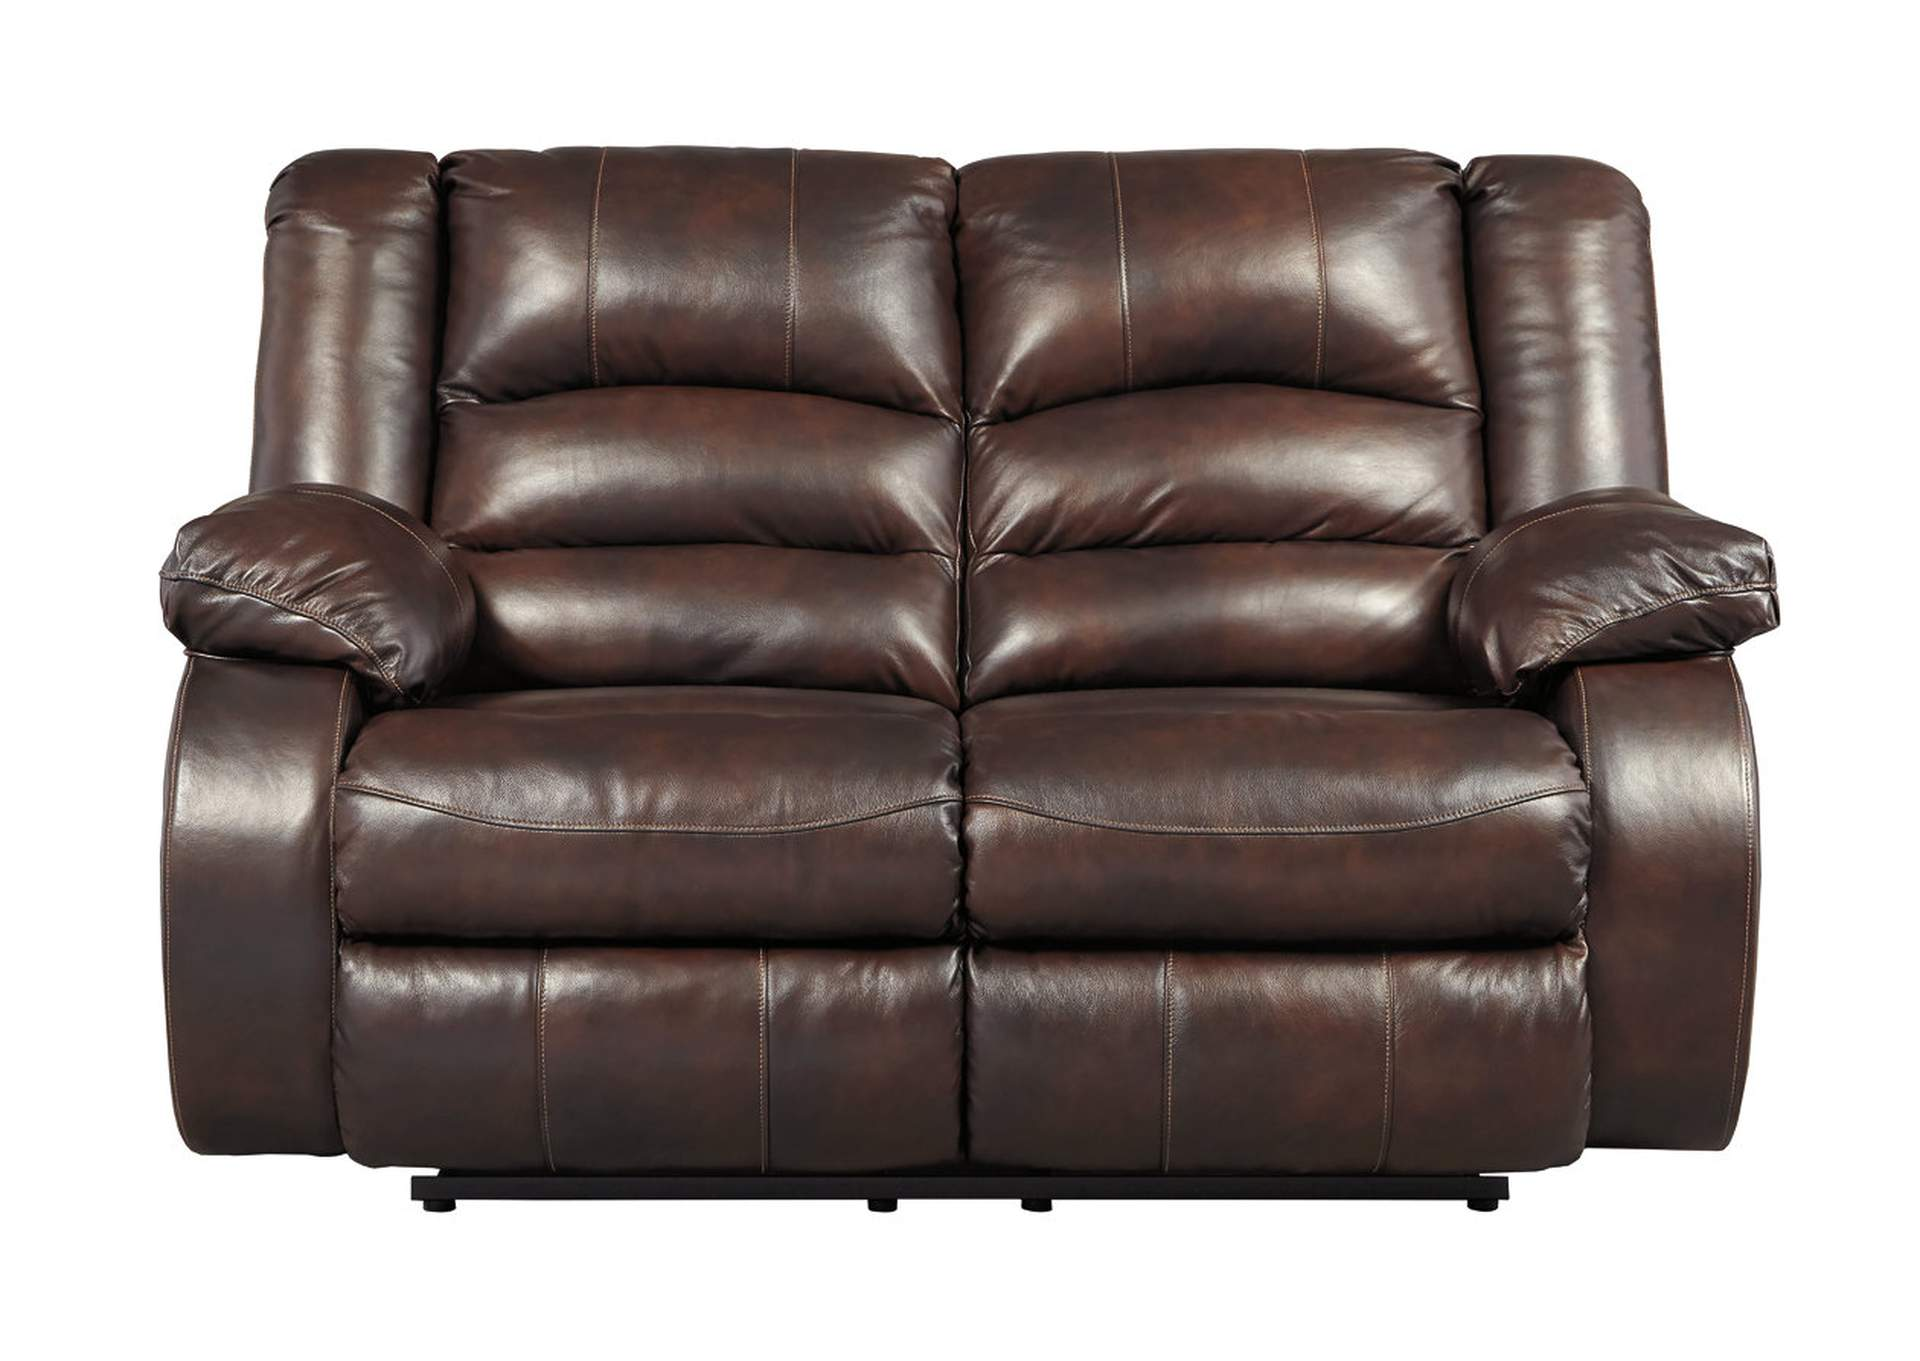 Levelland Cafe Reclining Loveseat,Signature Design By Ashley